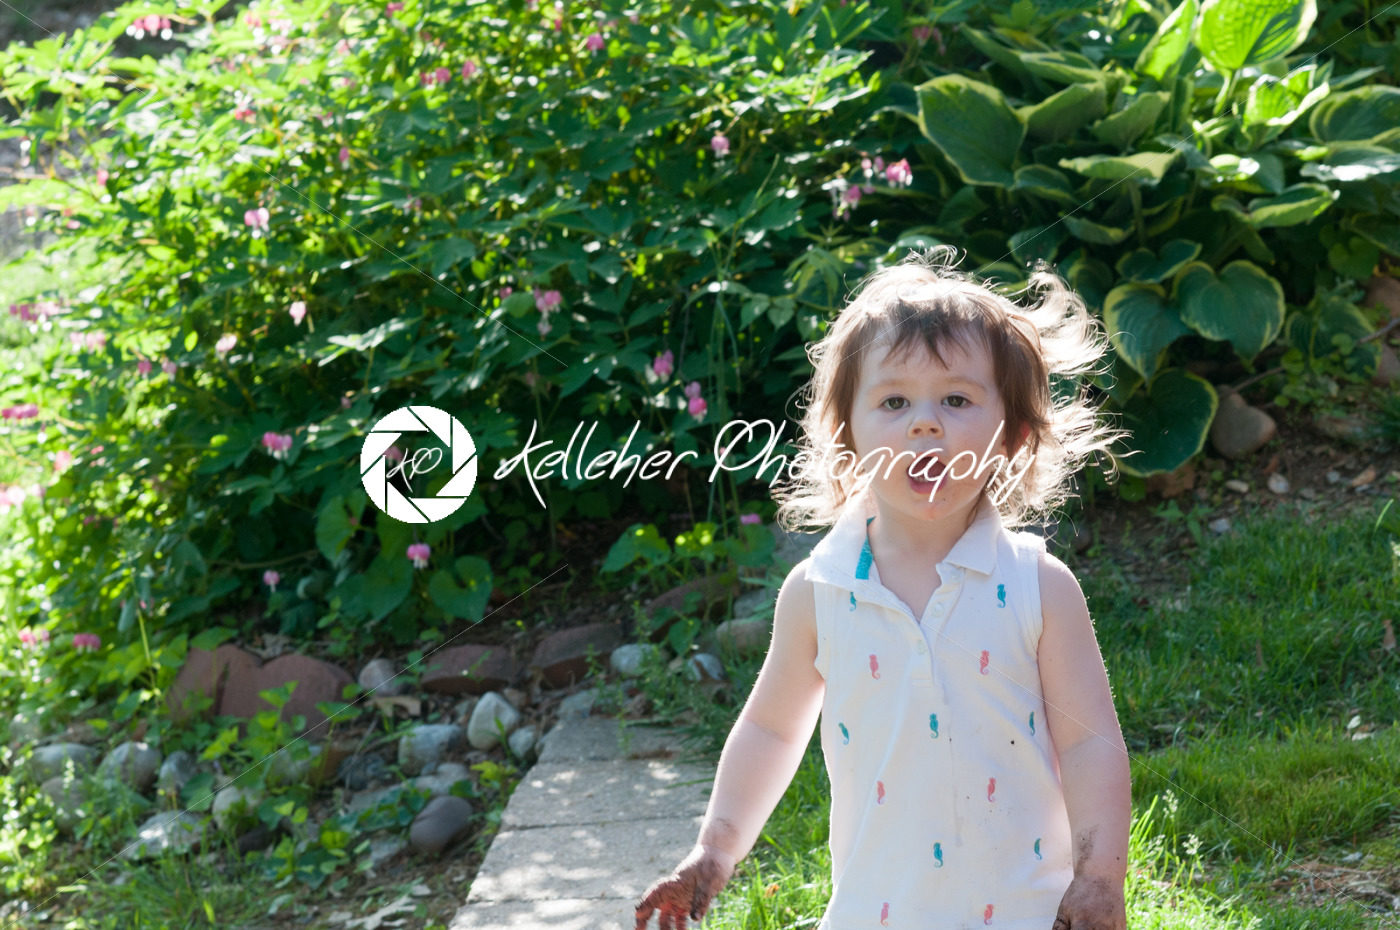 Young girl having fun outdoors in the back yard - Kelleher Photography Store